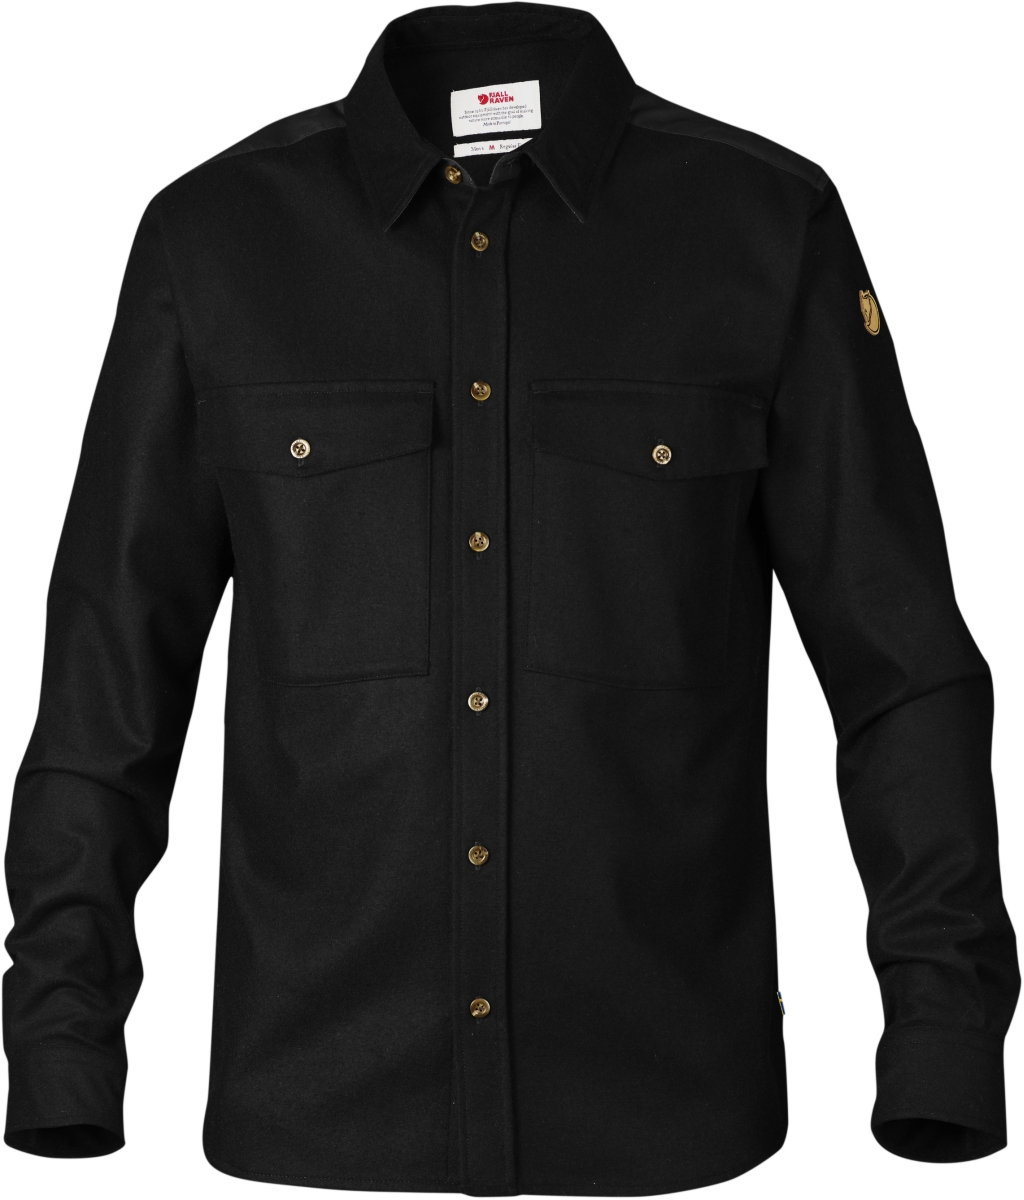 FjallRaven Ovik Wool Shirt Black-30